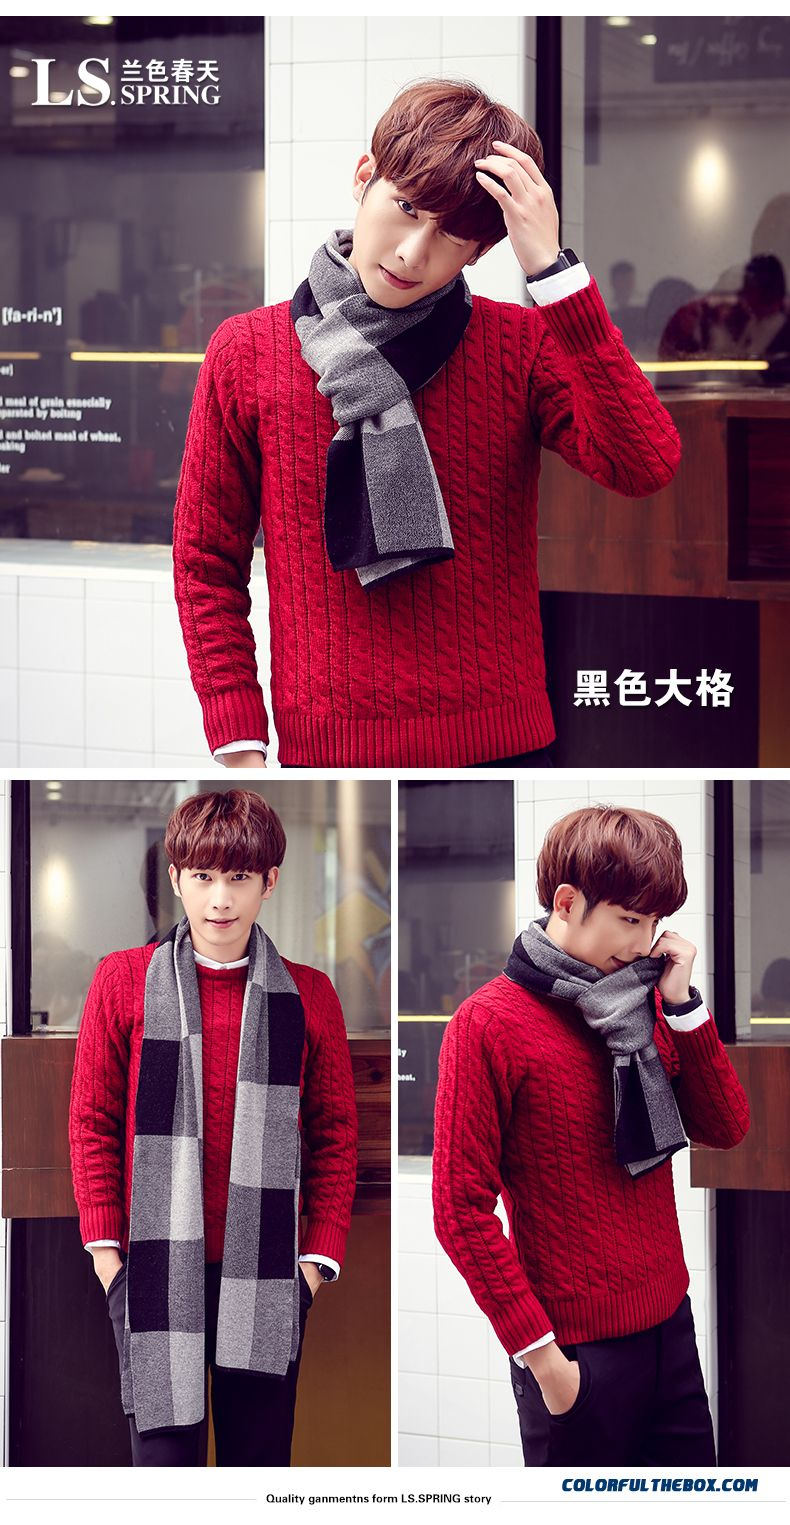 Winter Outdoor Sports Essential Men's Accessories High-end Business Plaid Scarf - detail images